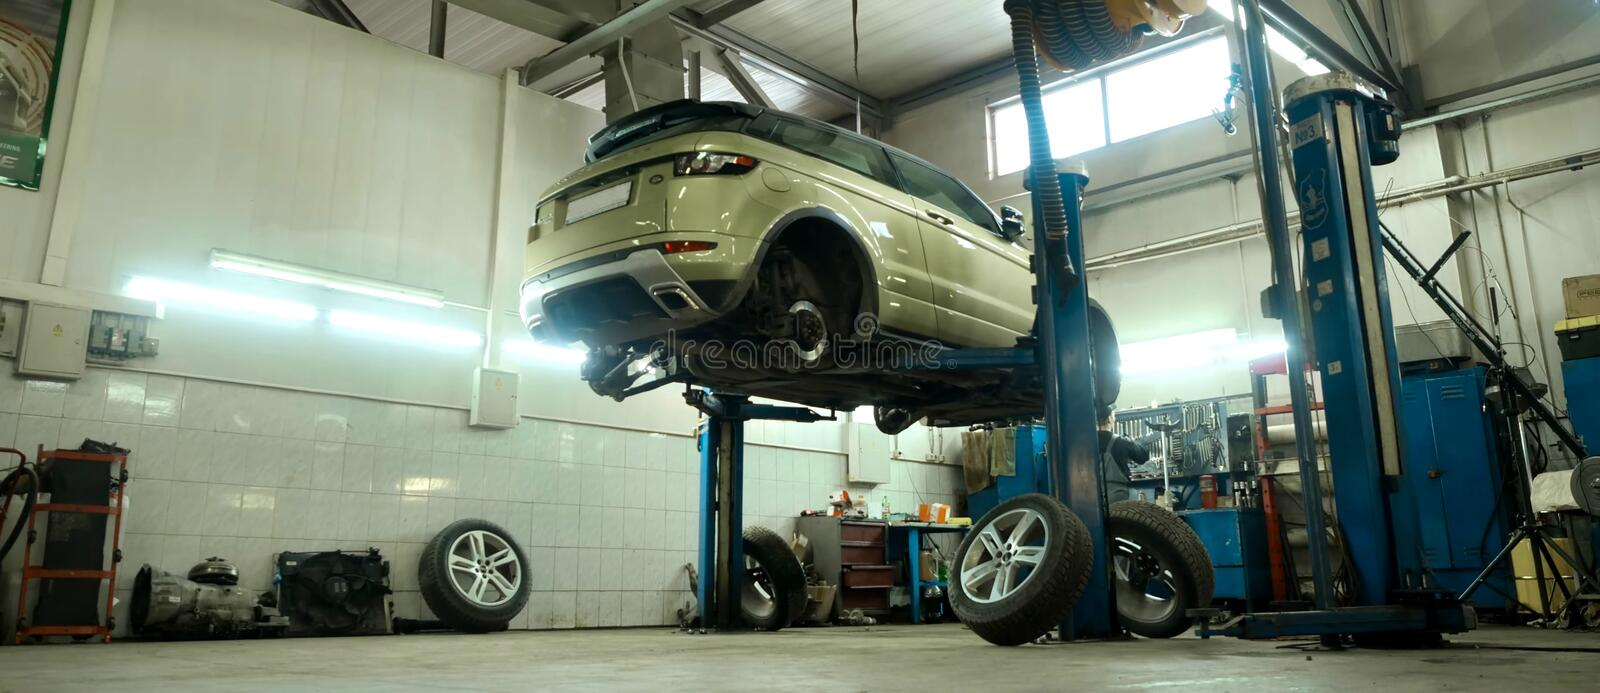 Car service center. Vehicle raised on lift at maintenance station. Auomobile repair and check up. stock photos